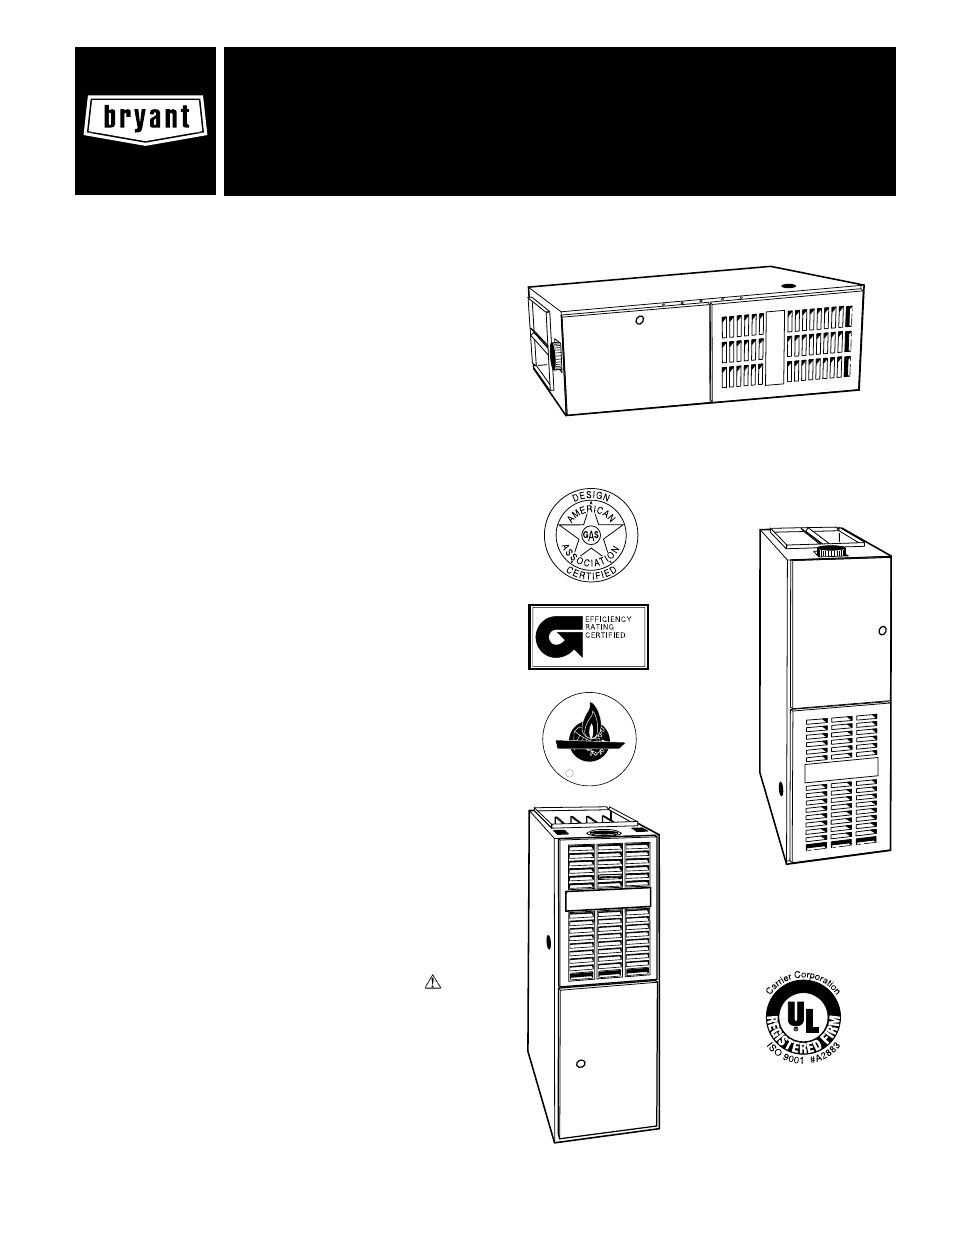 Bryant 395CAV User Manual 12 pages